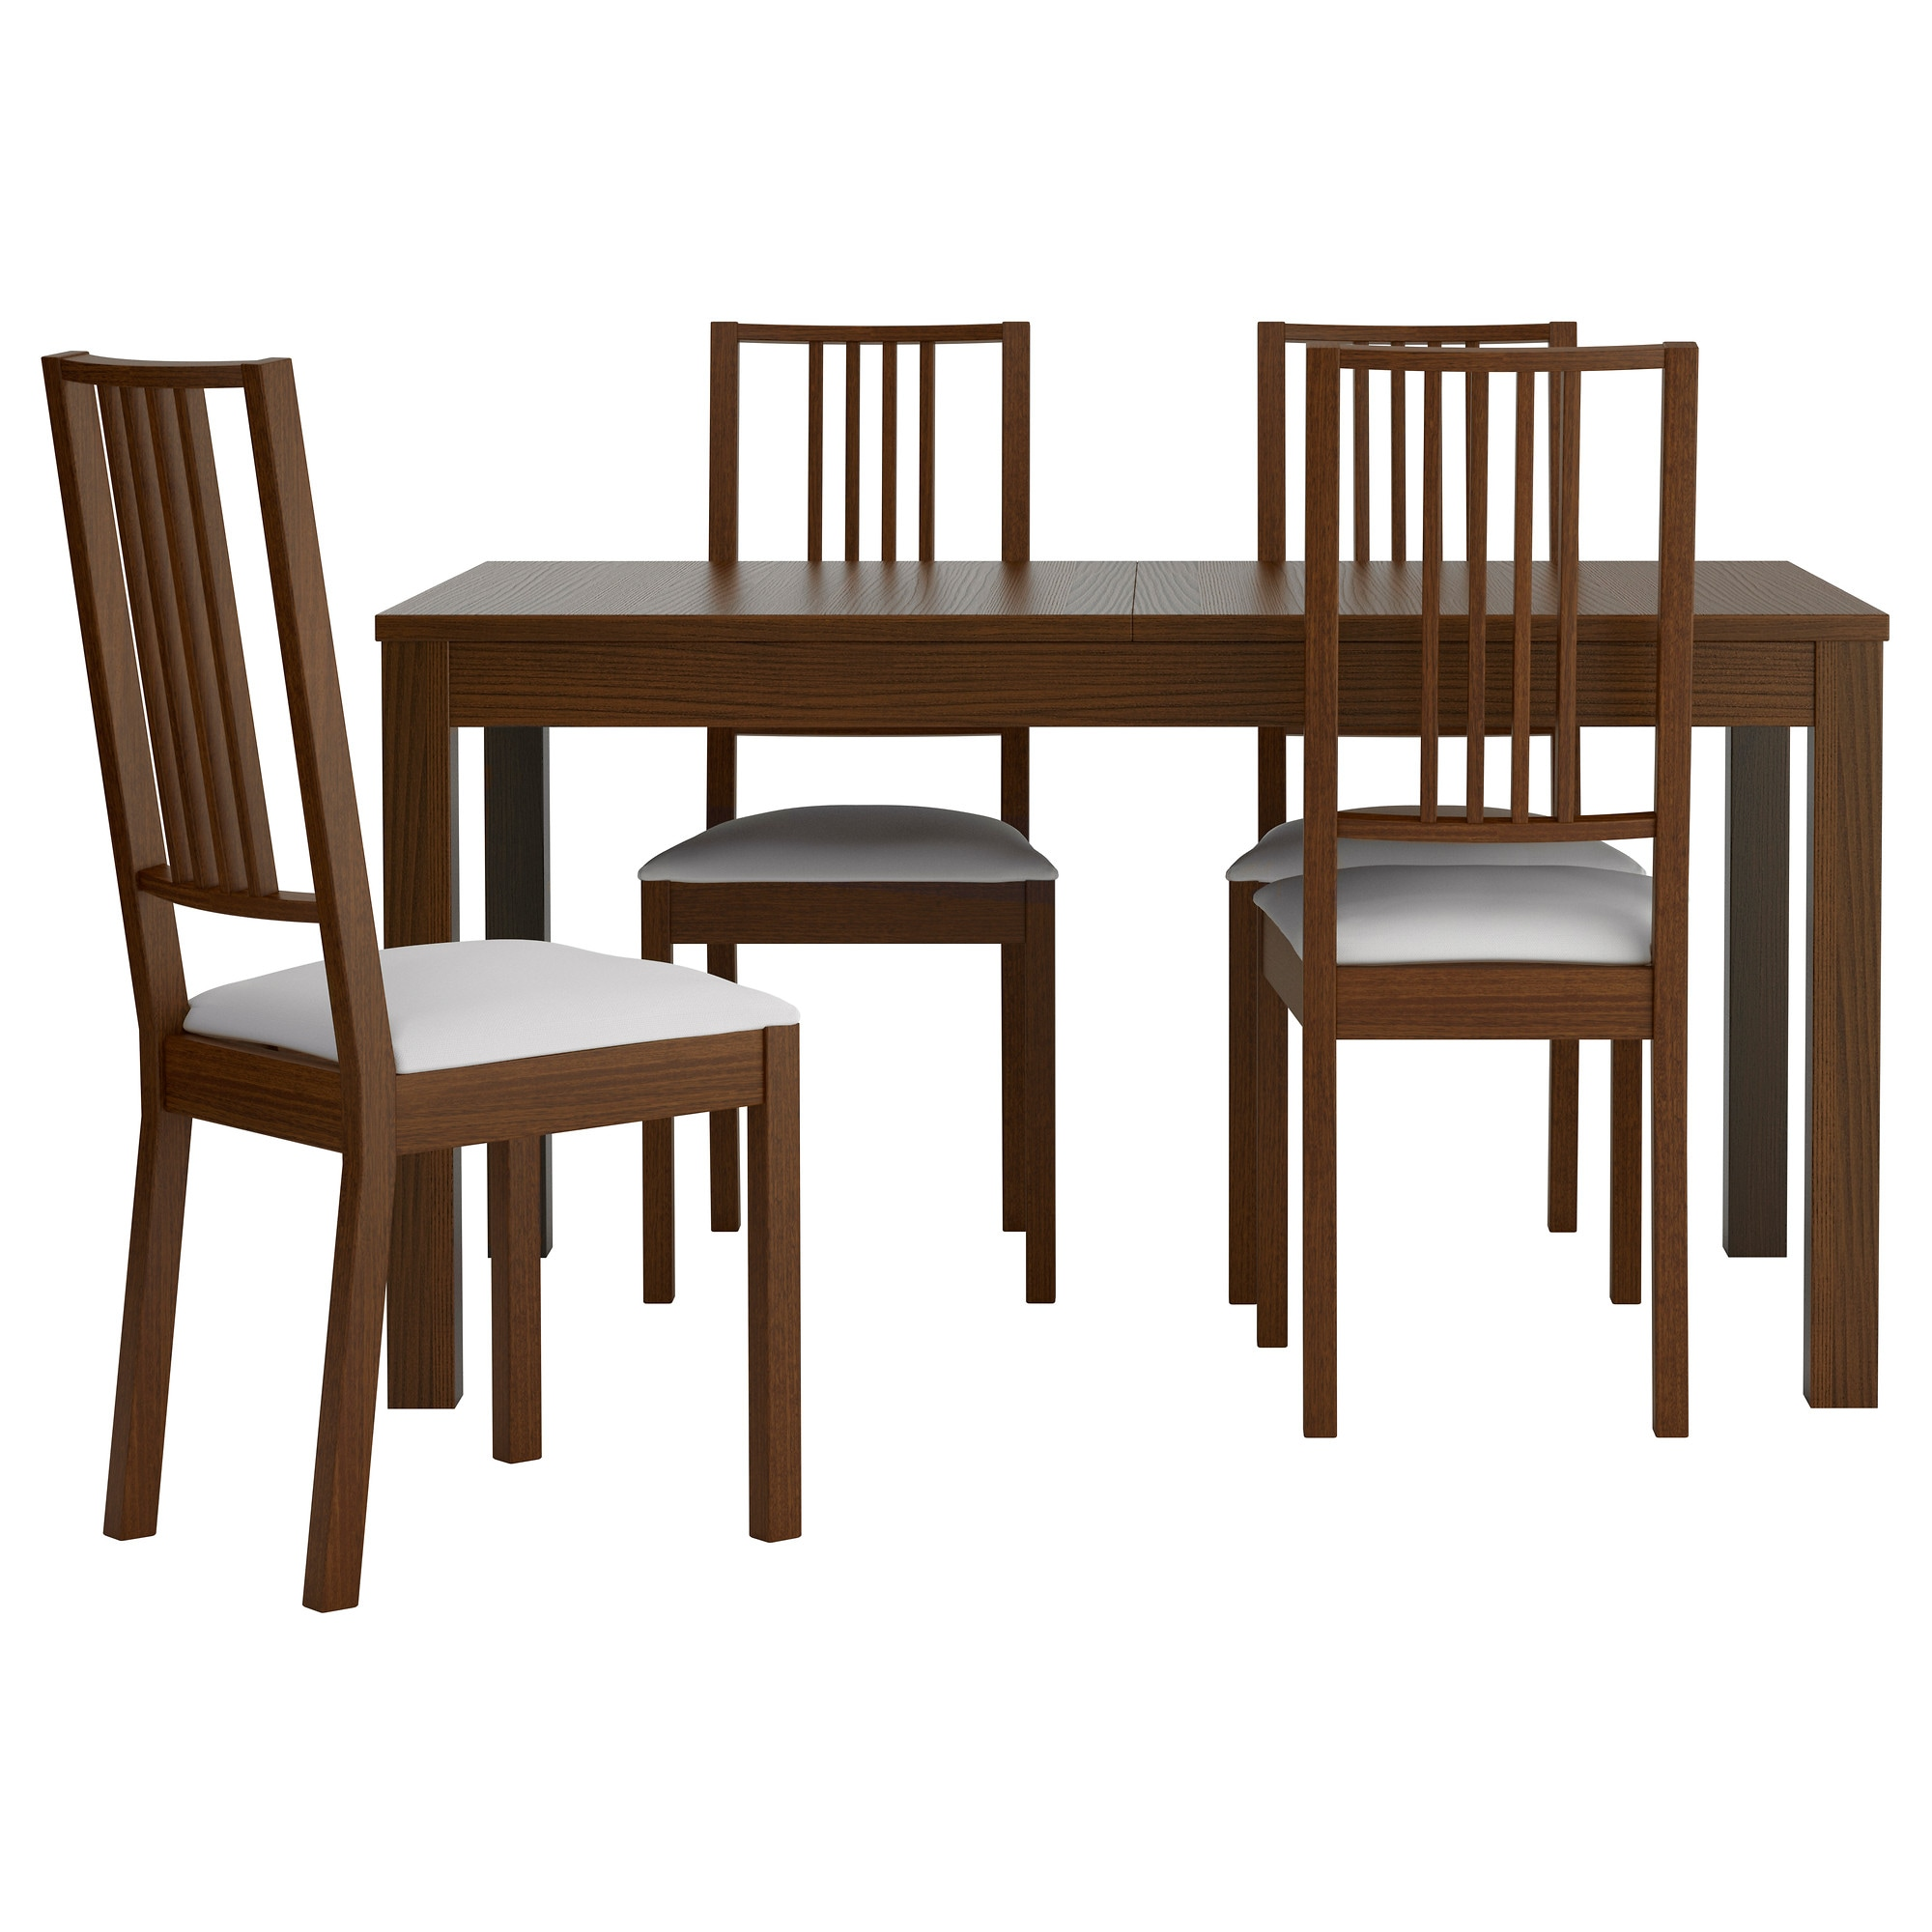 pe sjpg : dining room sets ikea